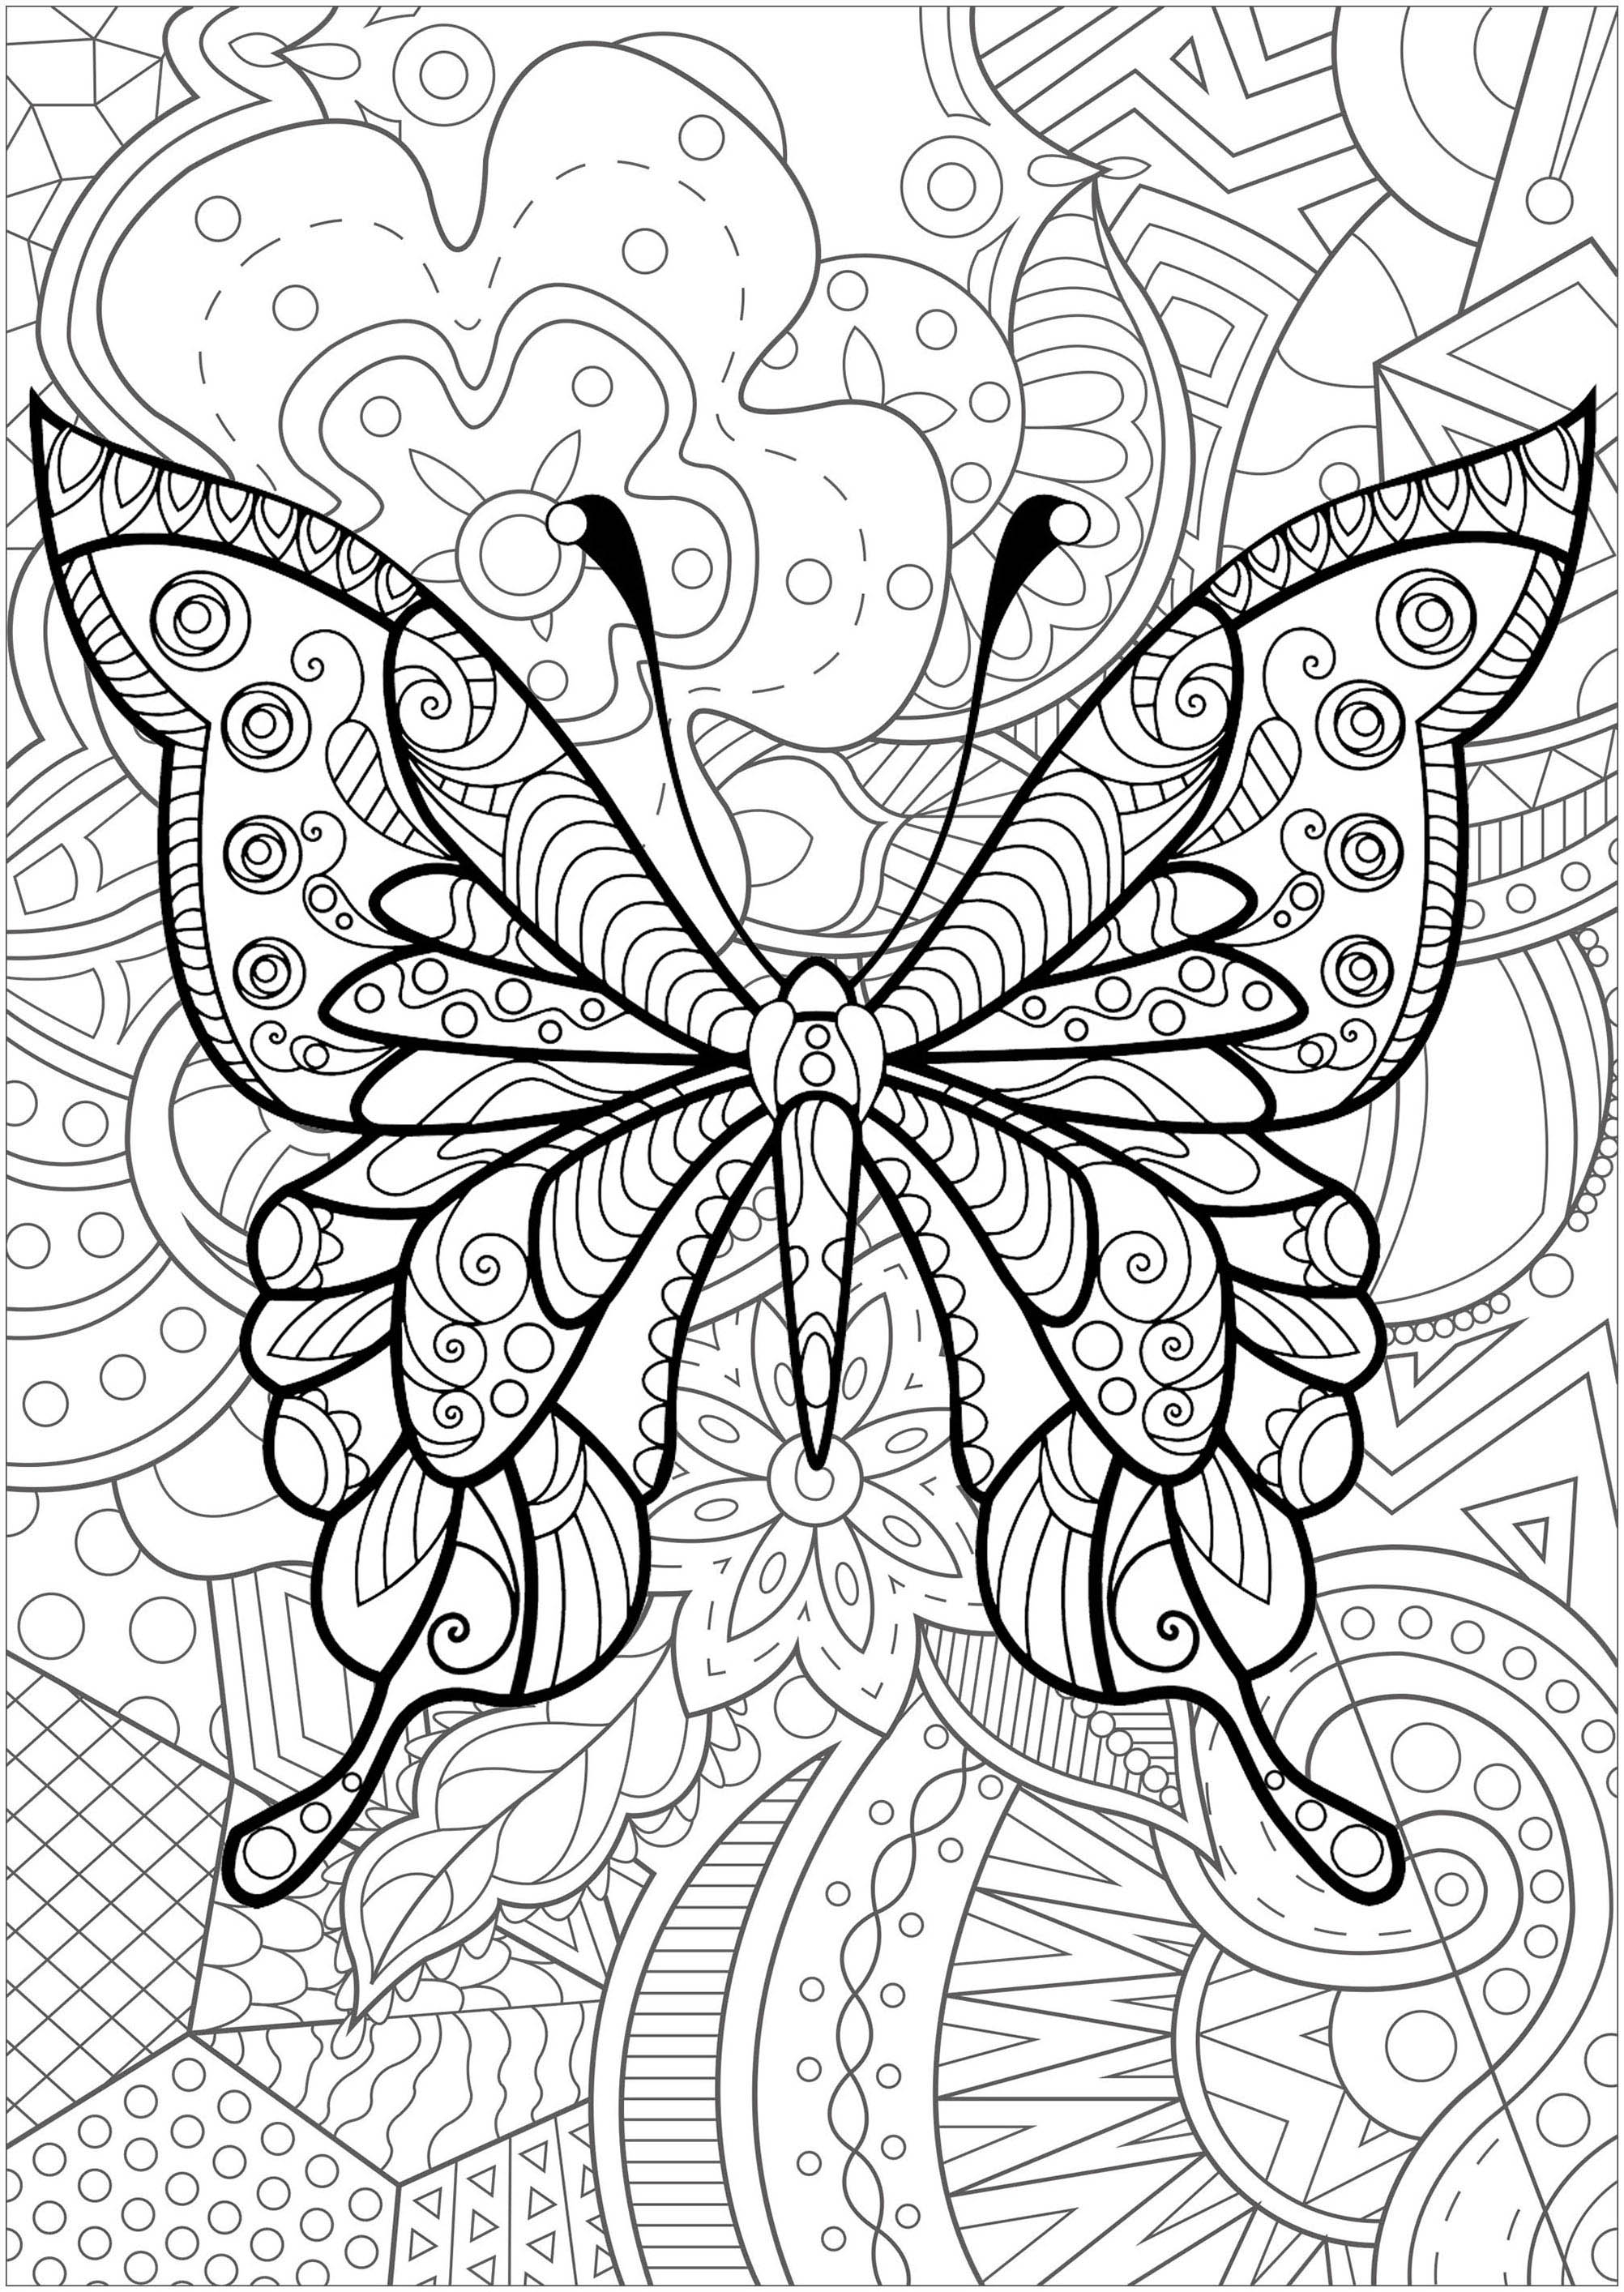 Butterfly with patterns inside and magnificent flowered background - 4